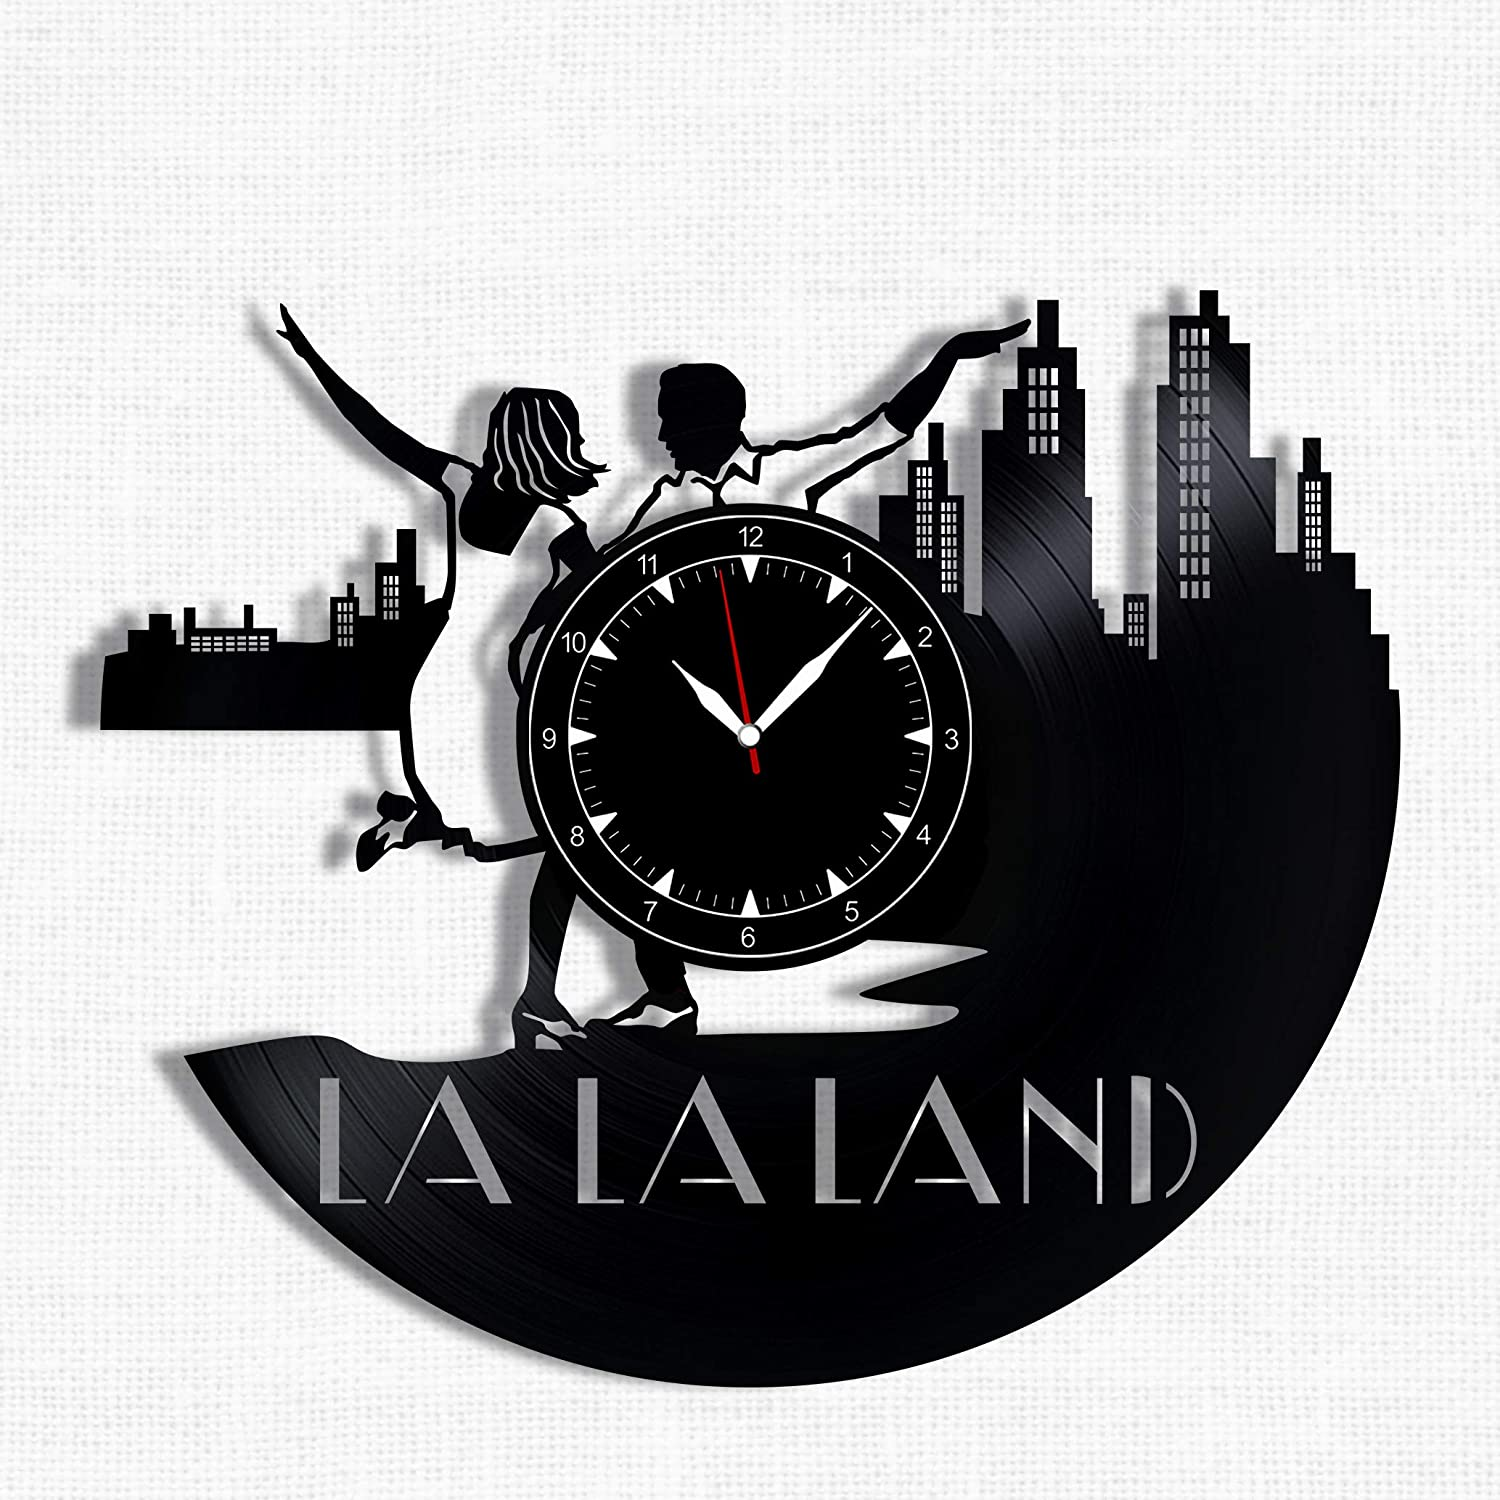 La La Land Vinyl Record Clock - Wall Clock La La Land - Best Gift for La La Land Lover - Original Wall Home Decor